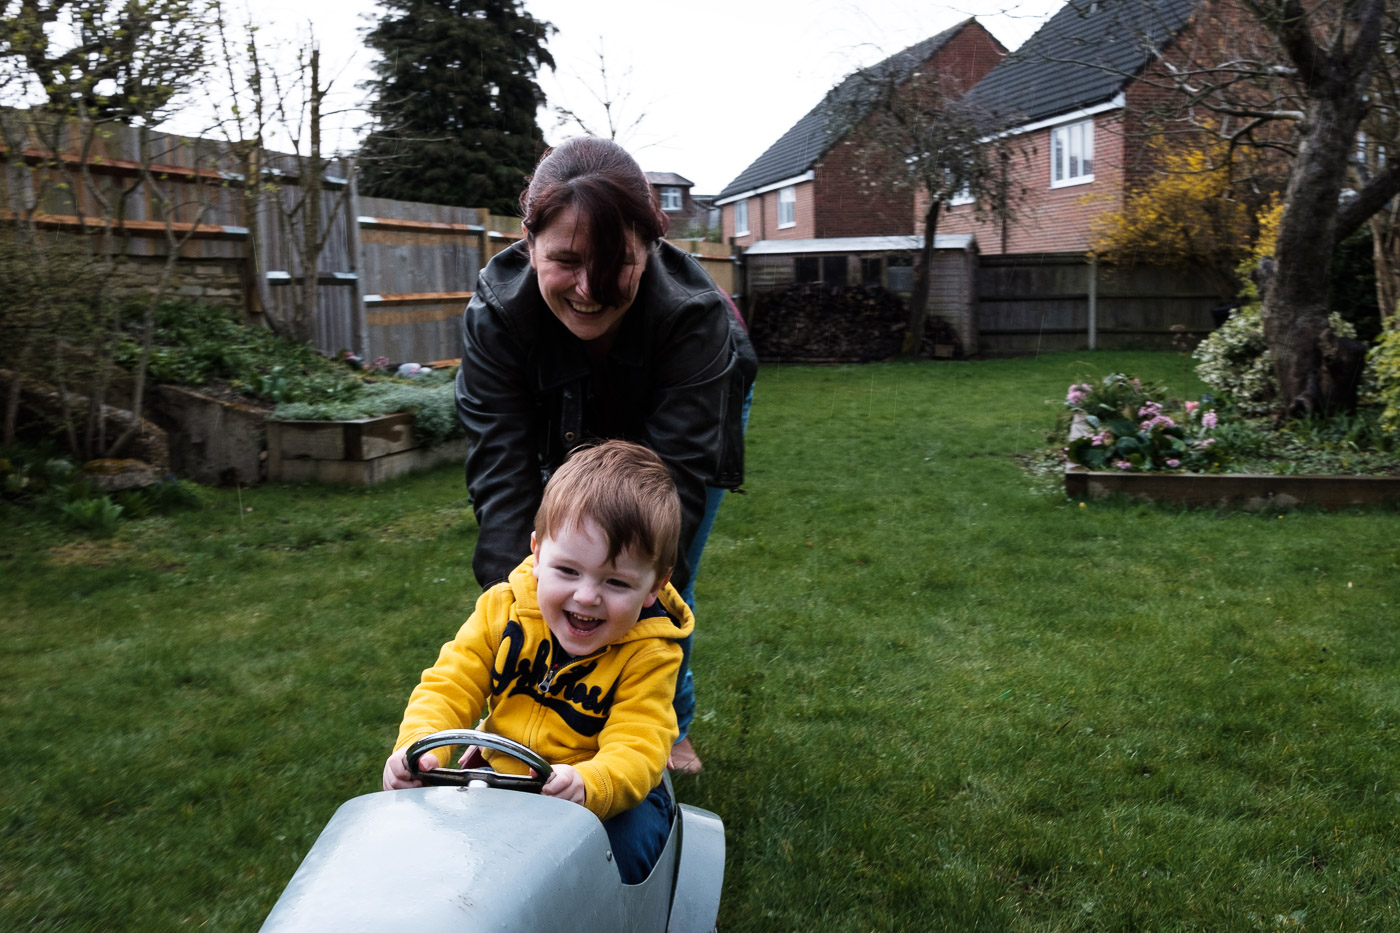 Mum and child outside in a toy car.